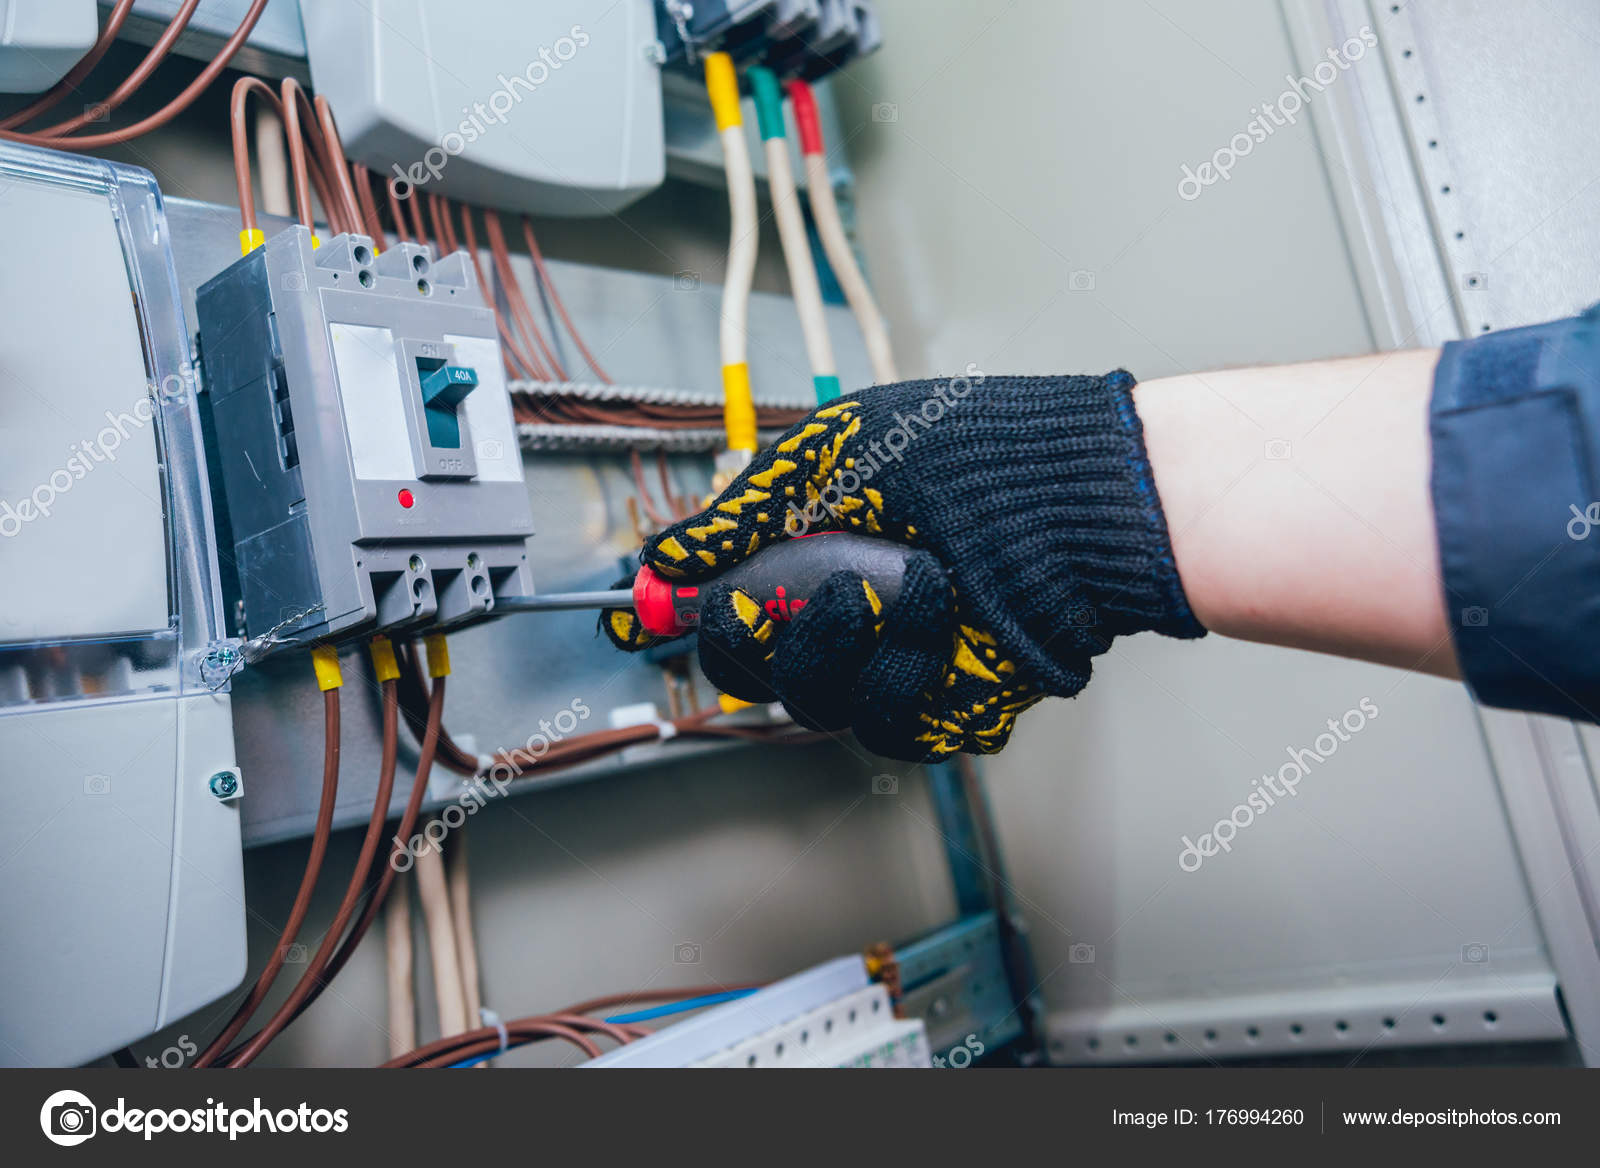 Electricians Hands Testing Switches Electric Box Electrical Panel Wiring Sub Fuses Contactors Stock Photo